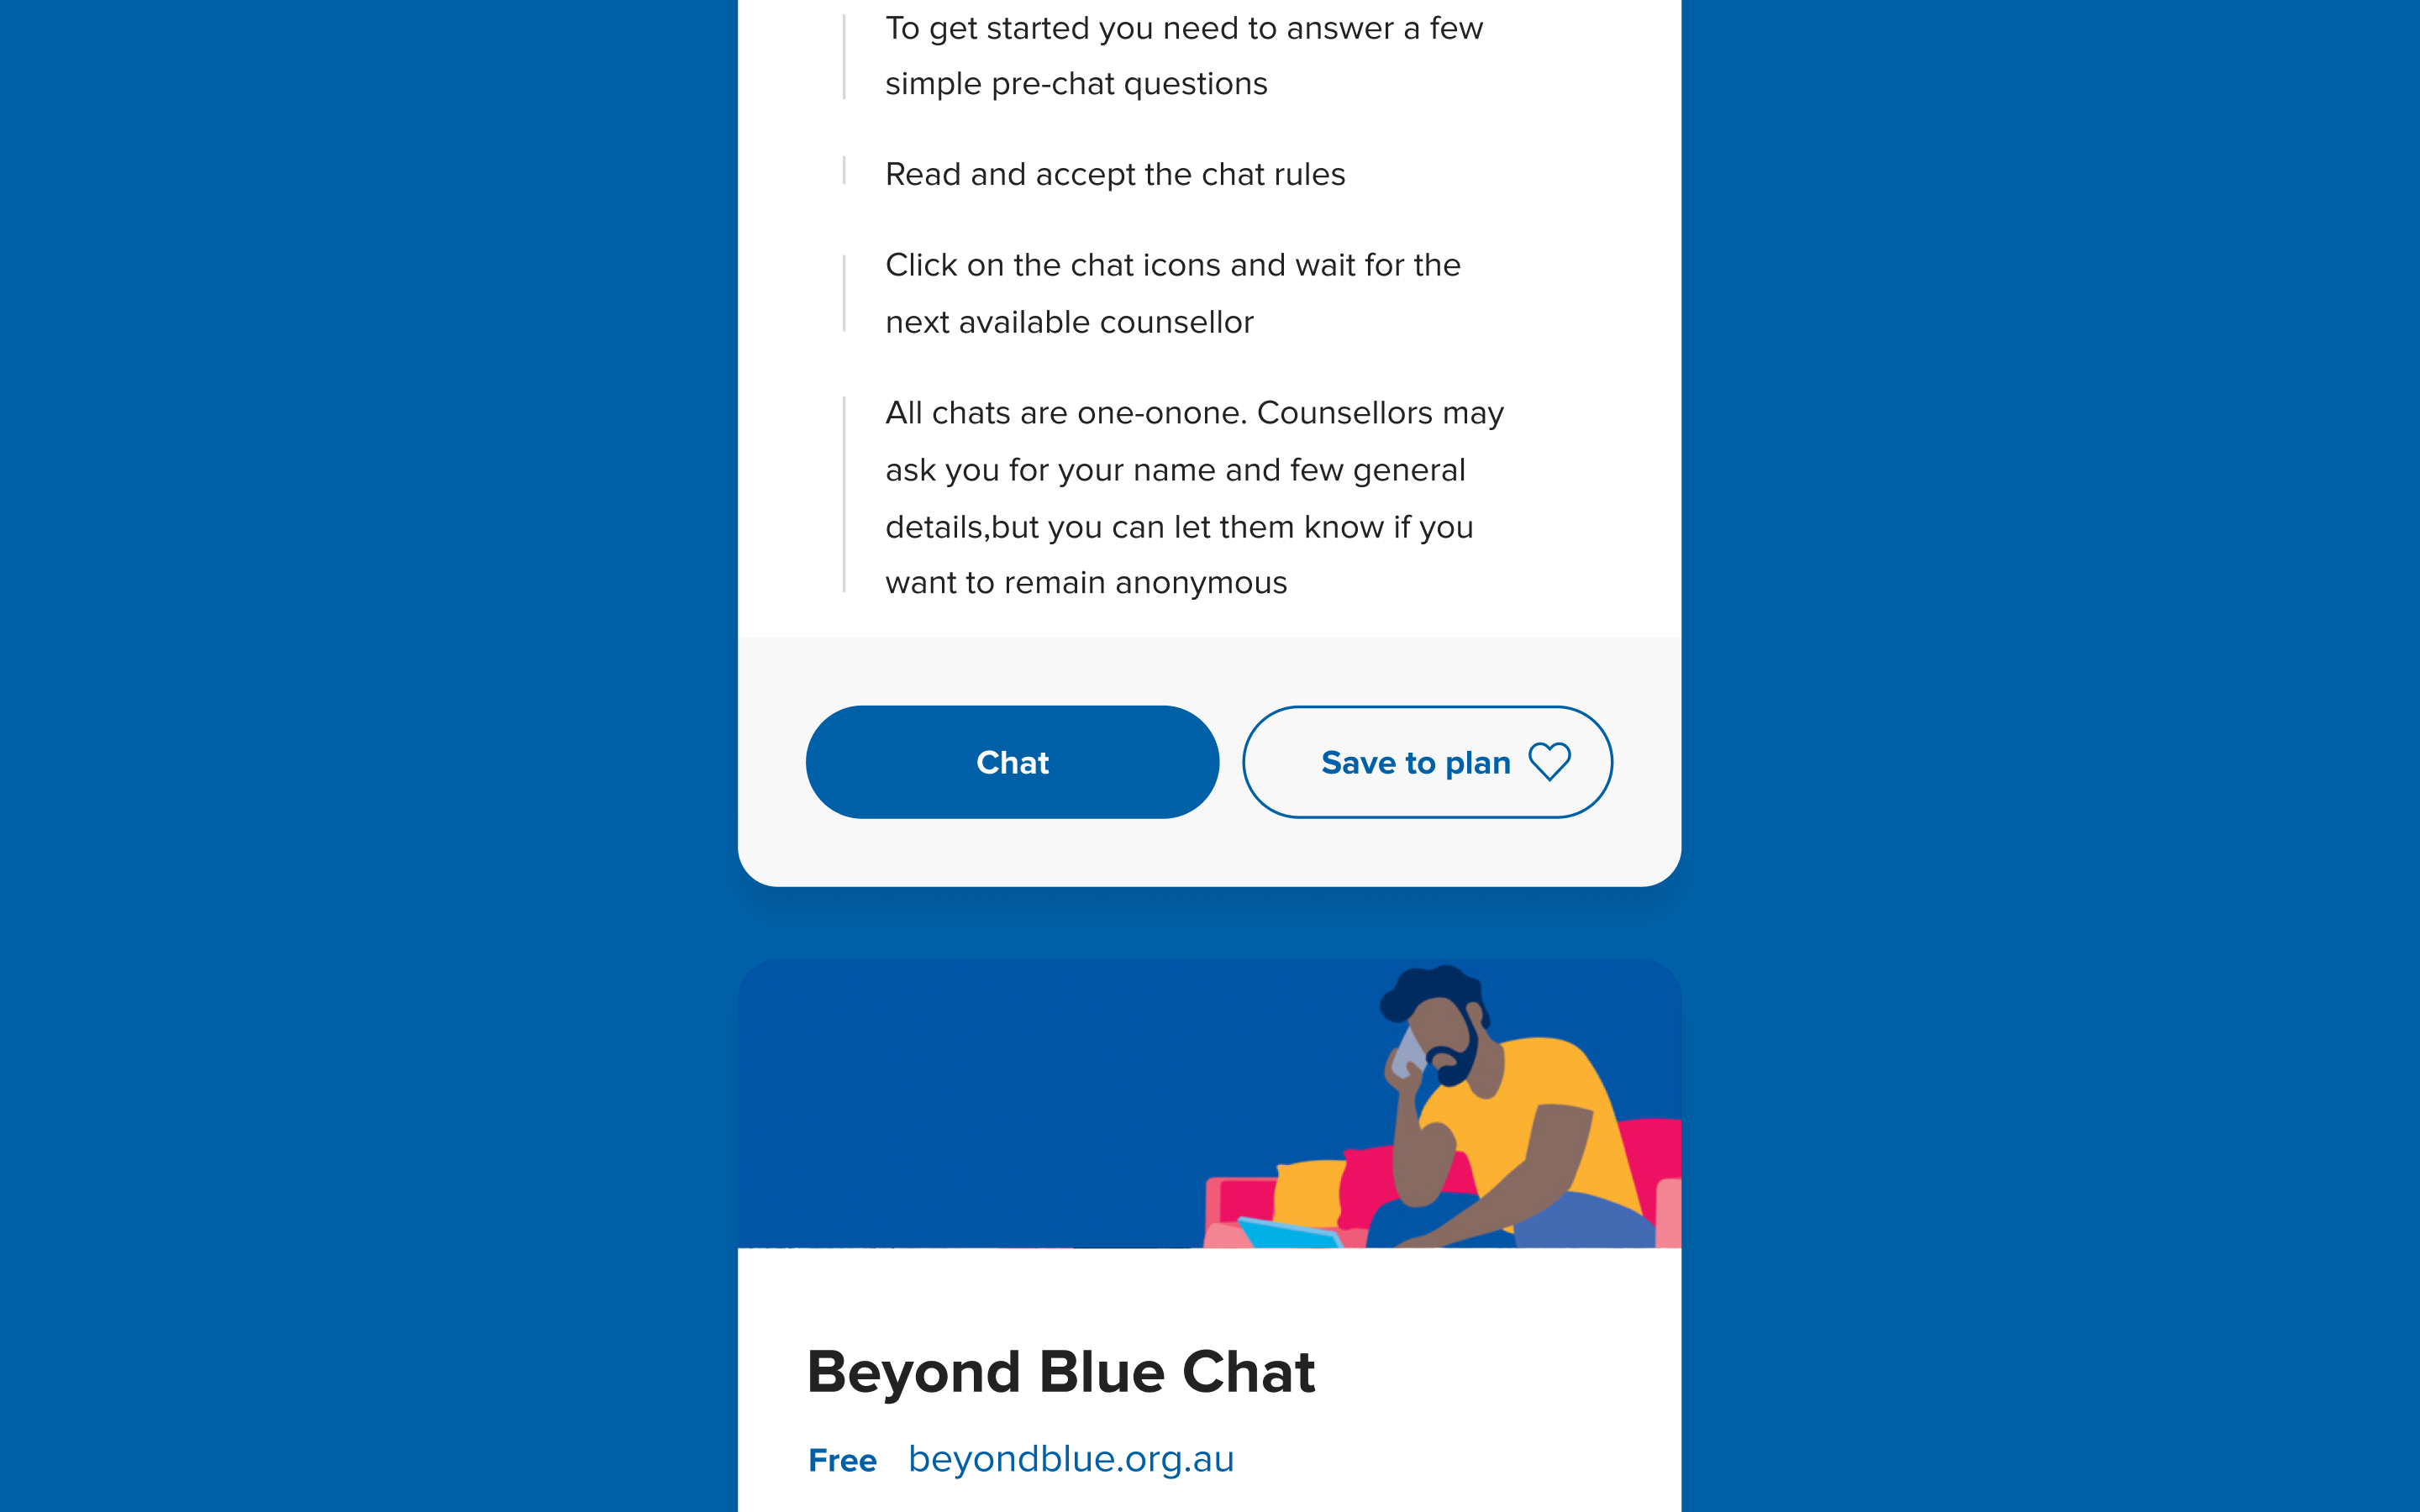 Next Step cards showcasing the Beyond Blue Chat support option